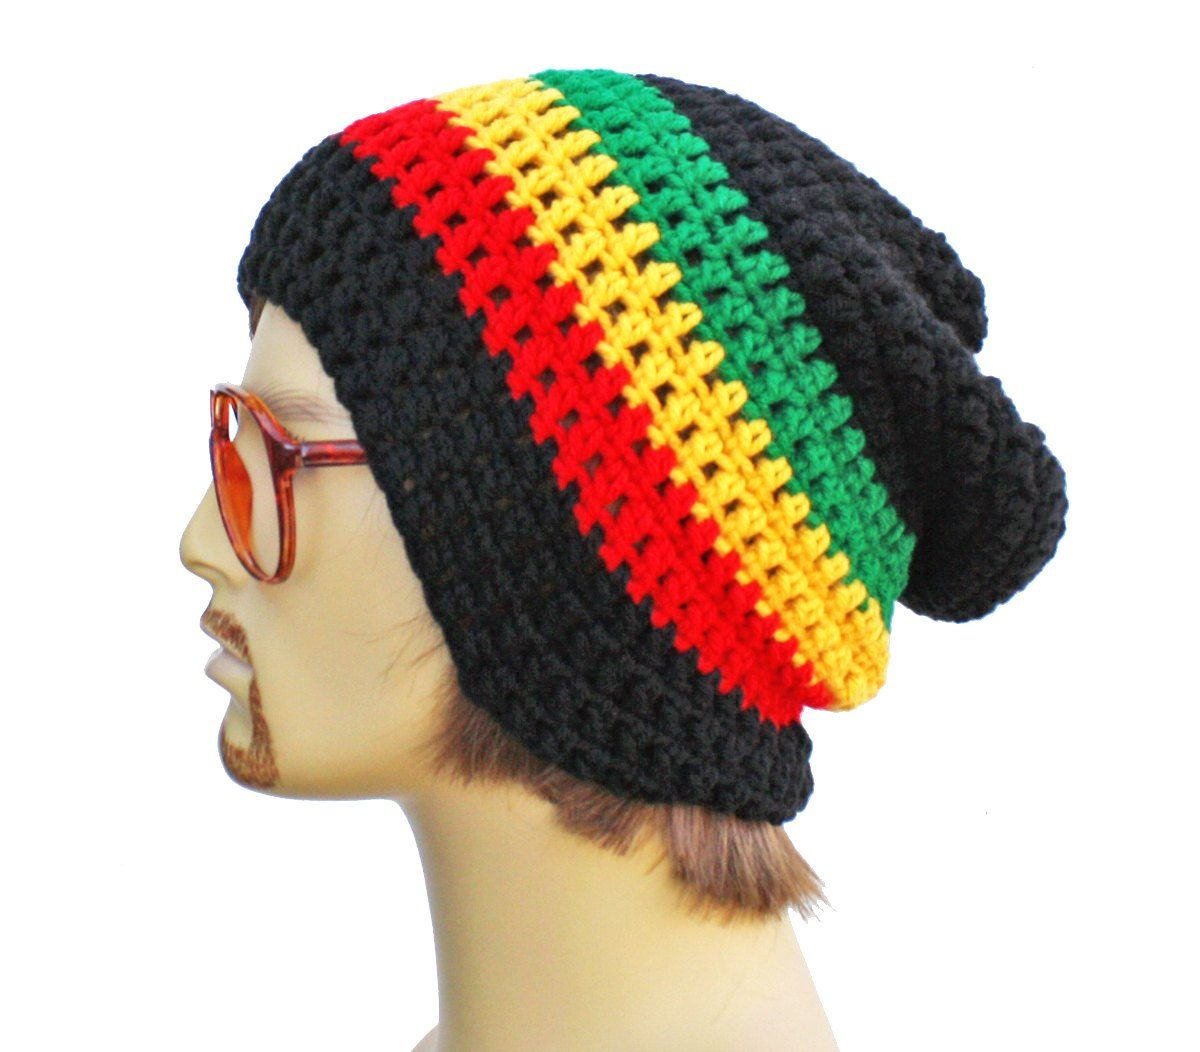 Slouch rasta beanie mens or unisex ultimate slacker striped slouch rasta beanie mens or unisex ultimate slacker striped beanie hat 2000 via crochet ideascrochet hatseasy crochetfree bankloansurffo Image collections